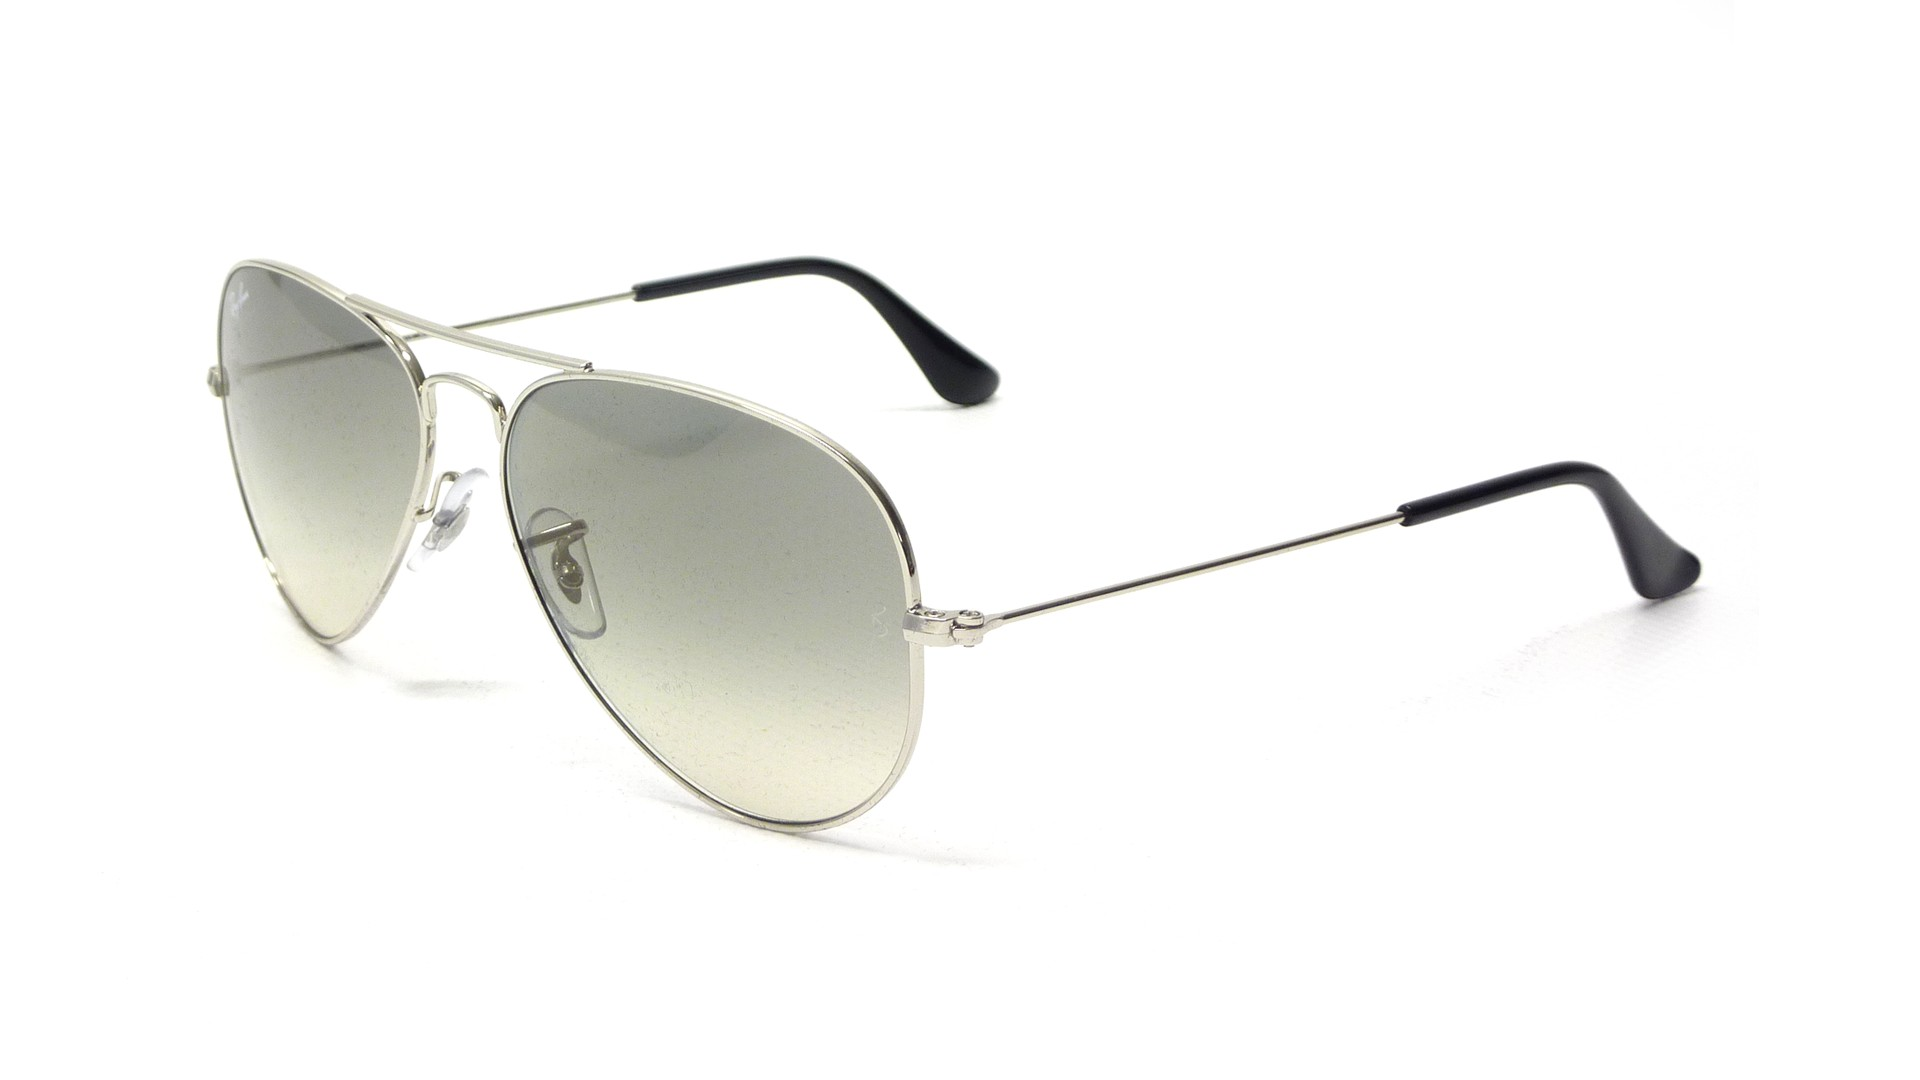 ray ban aviator 3025 price in pakistan